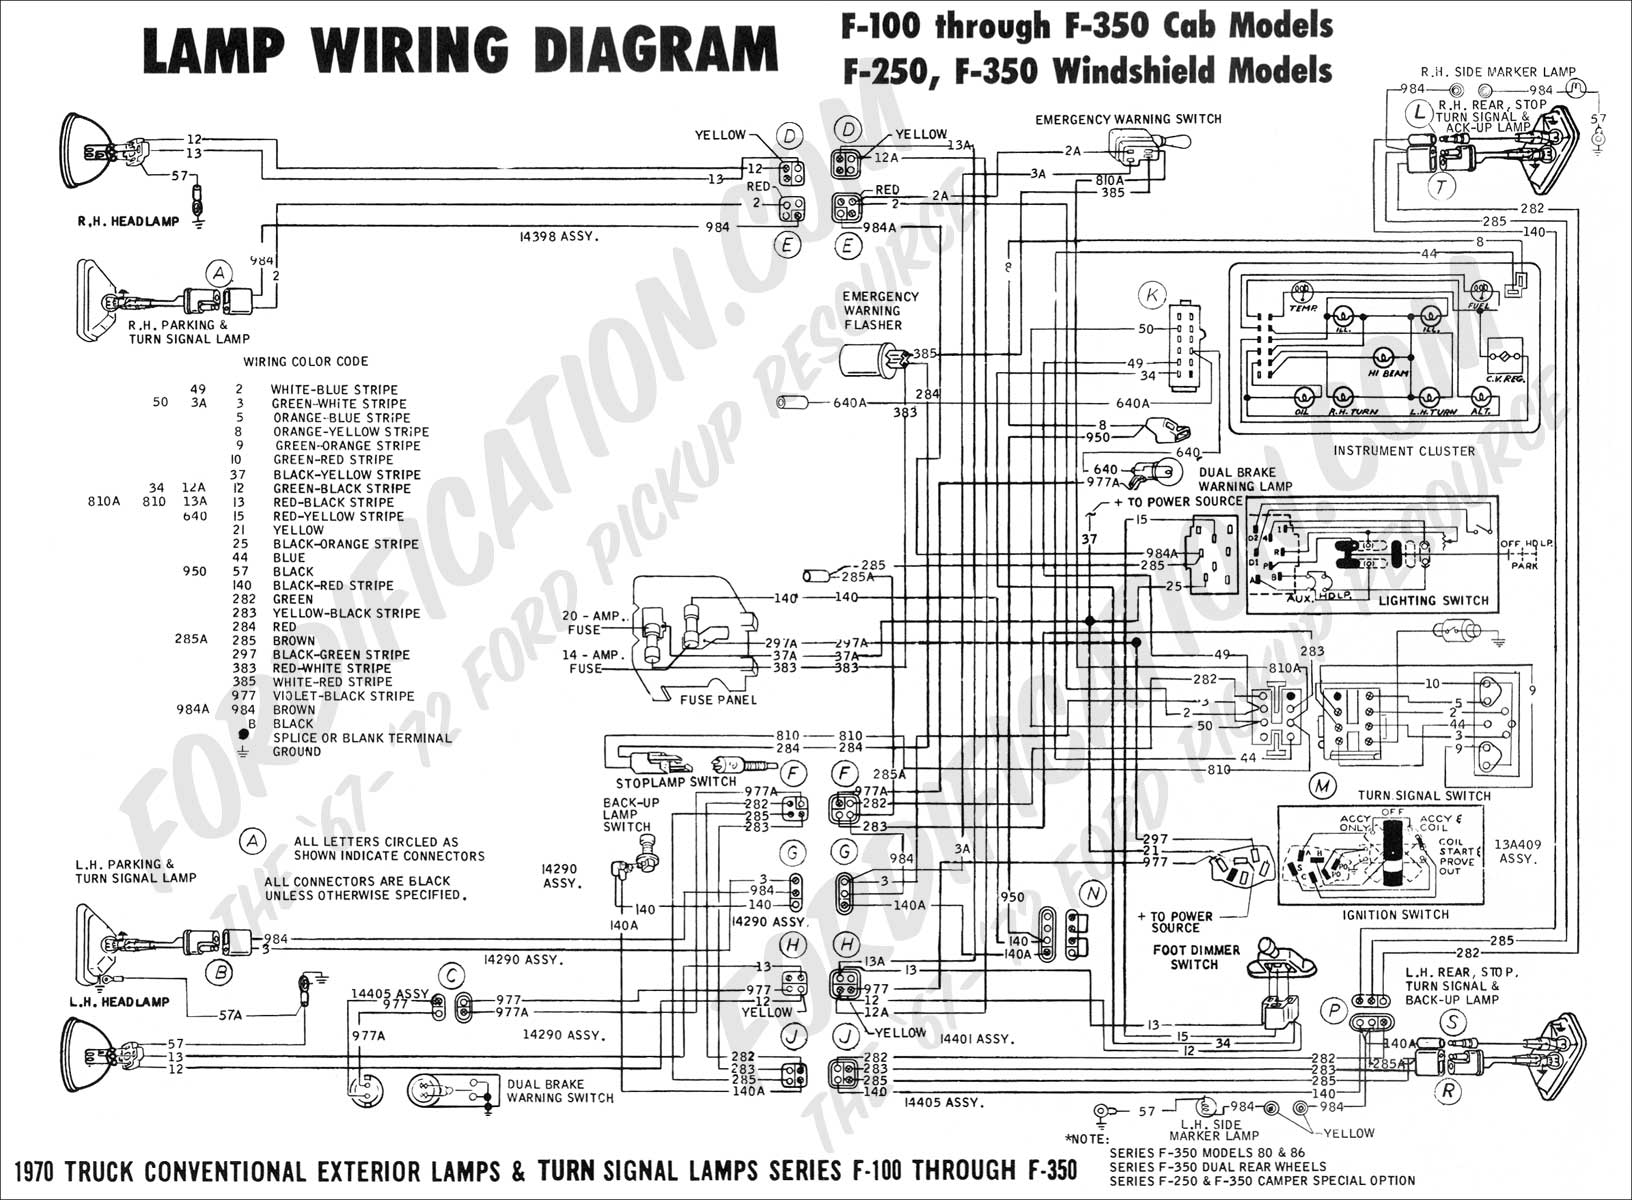 1999 Ford F750 Fuse Diagram Opinions About Wiring Diagram \u2022 2005 F 350 Wiring  Diagram 1999 F 350 Wiring Diagram